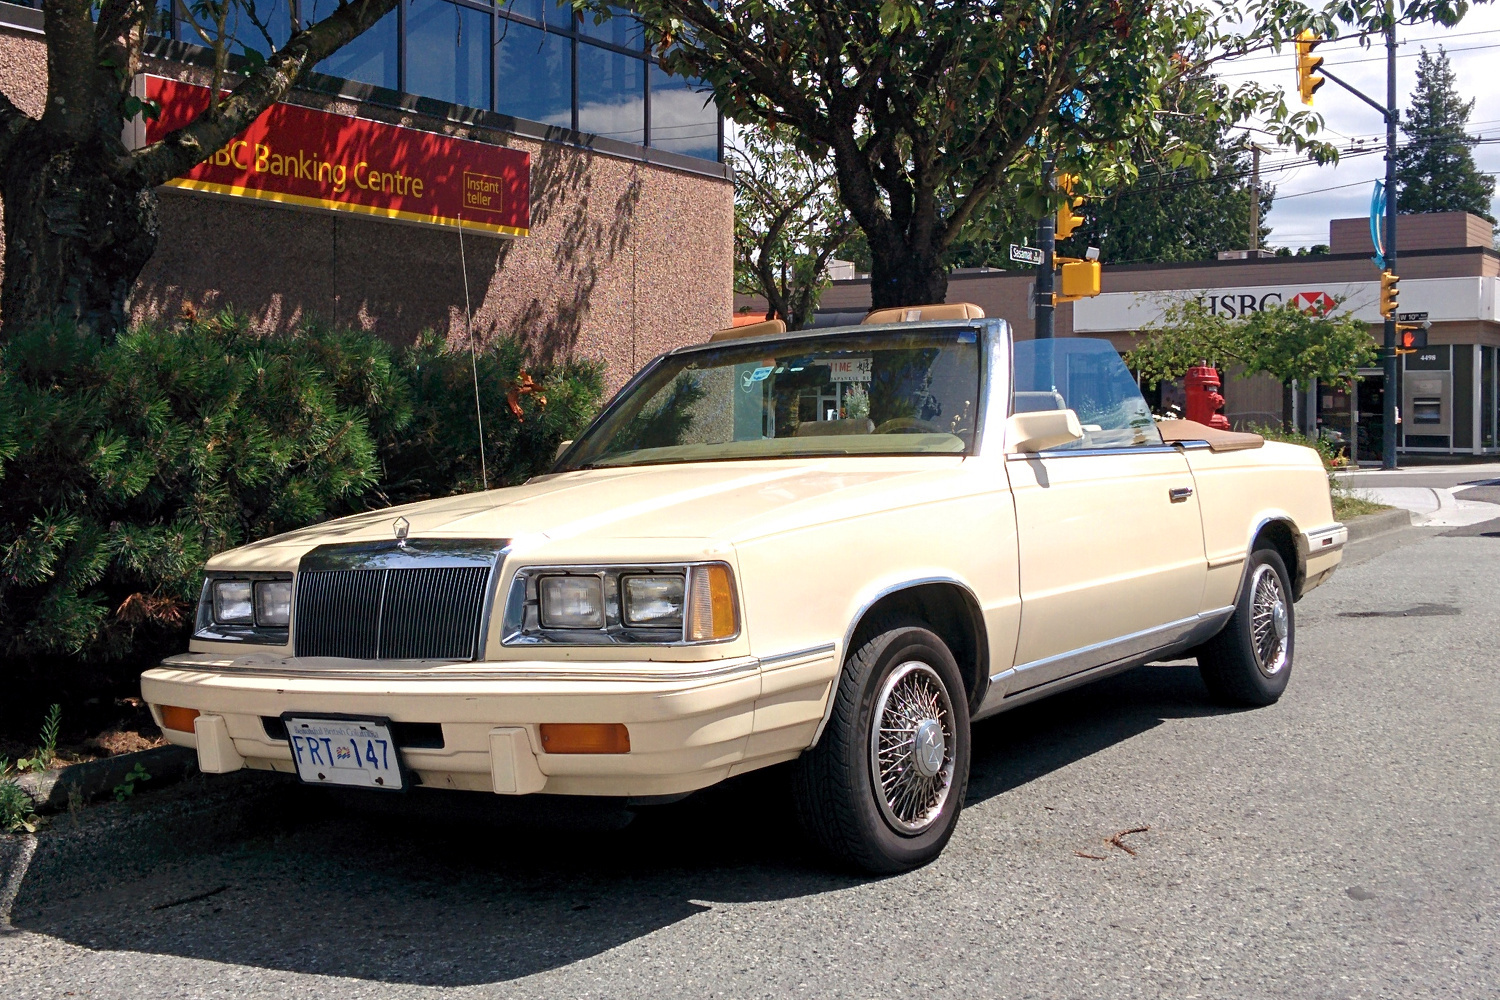 Old Parked Cars Vancouver: 1986 Chrysler LeBaron Convertible